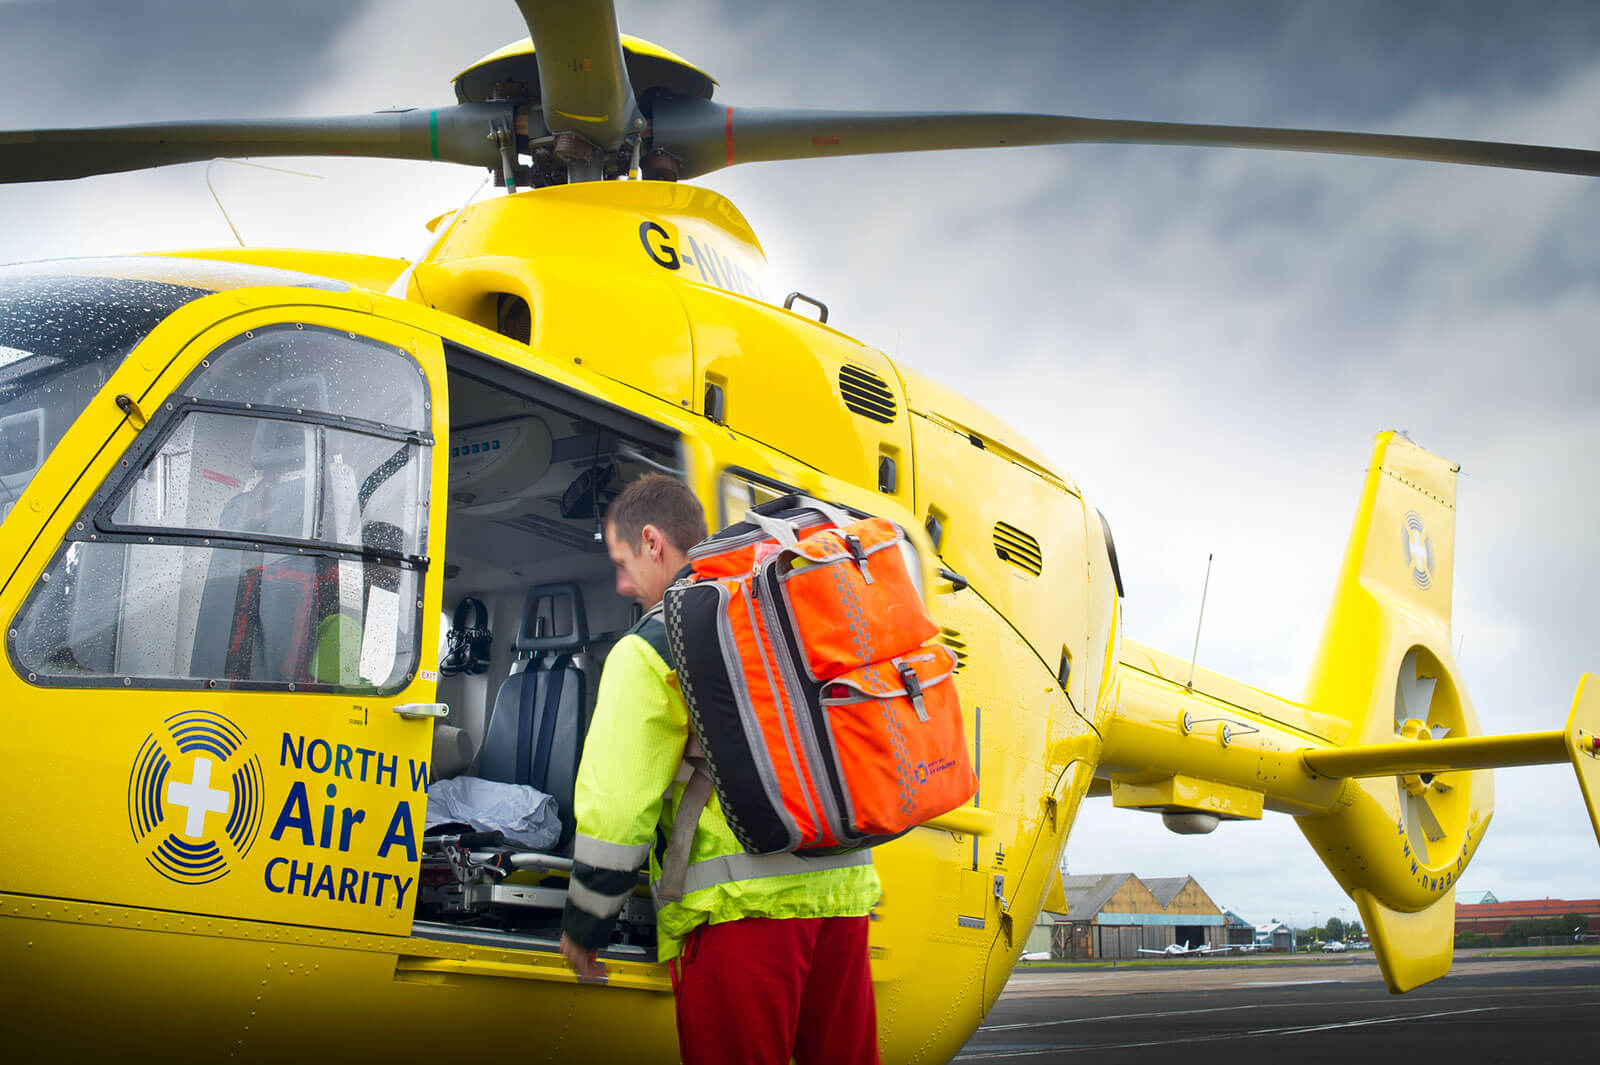 North West Air Ambulance and Crew